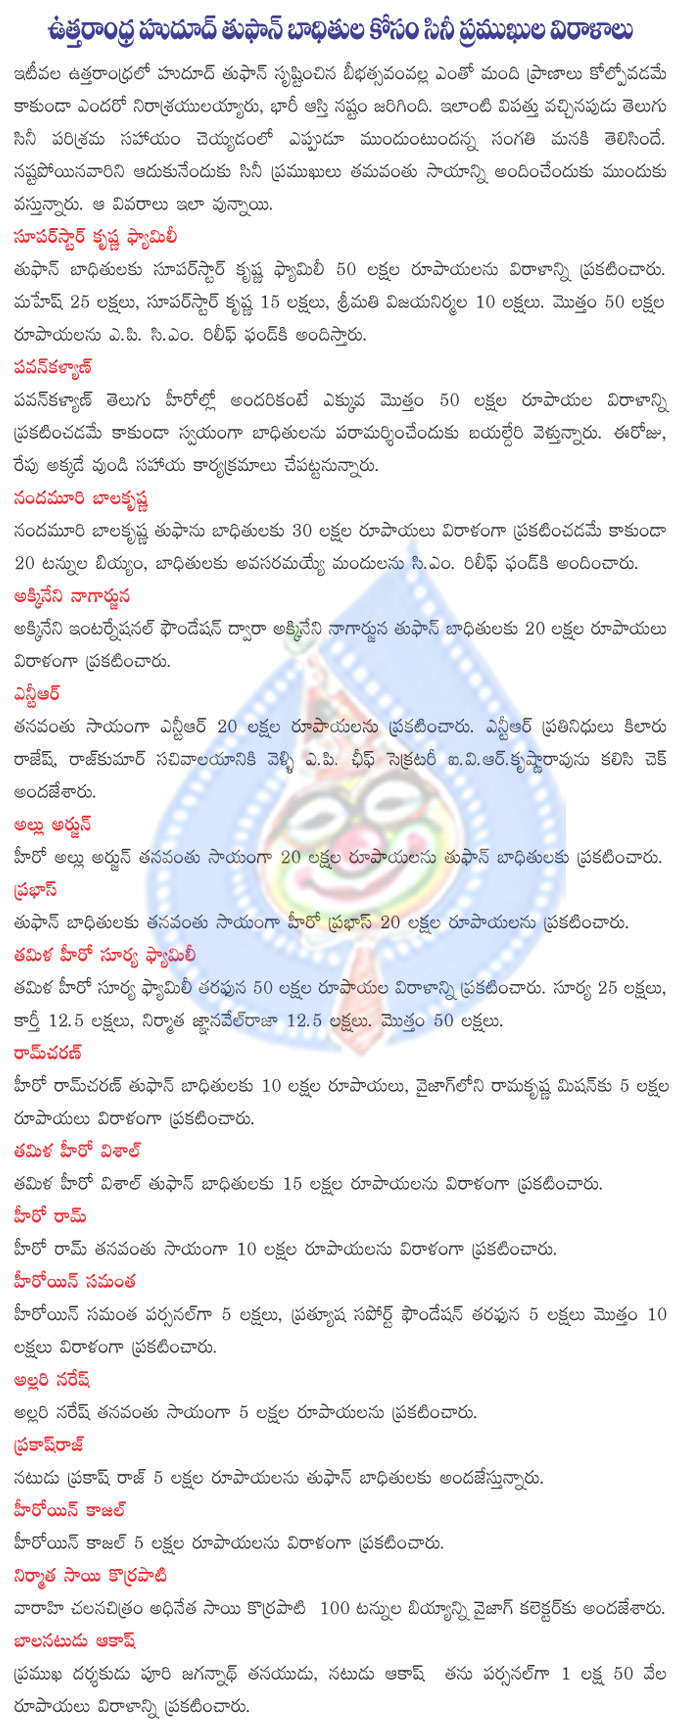 donations to hudhud victims,pawan kalyan 50 lakhs donation,balakrishna 30 lakhs donation,krishna family 50 lakhs donation,surya family 50 lakhs donation,nagarjuna 20 lakhs donation  donations to hudhud victims,pawan kalyan 50 lakhs donation,balakrishna 30 lakhs donation,krishna family 50 lakhs donation,surya family 50 lakhs donation,nagarjuna 20 lakhs donation